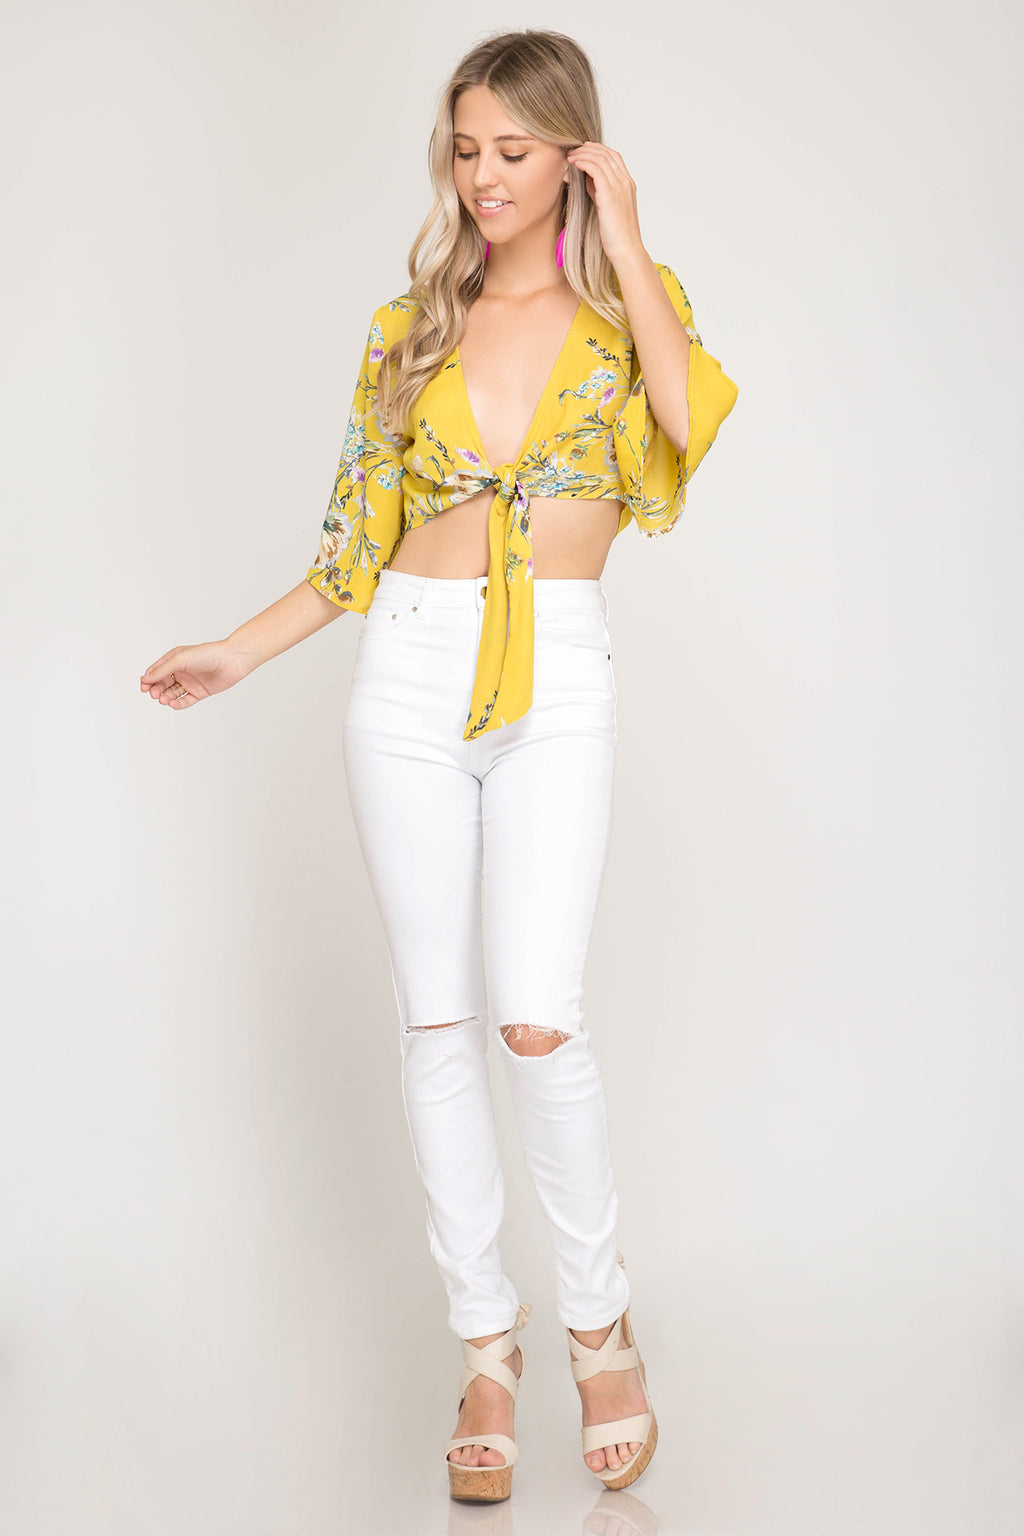 Floral Crop Top with self Tie - Artemisia Clothing Shop